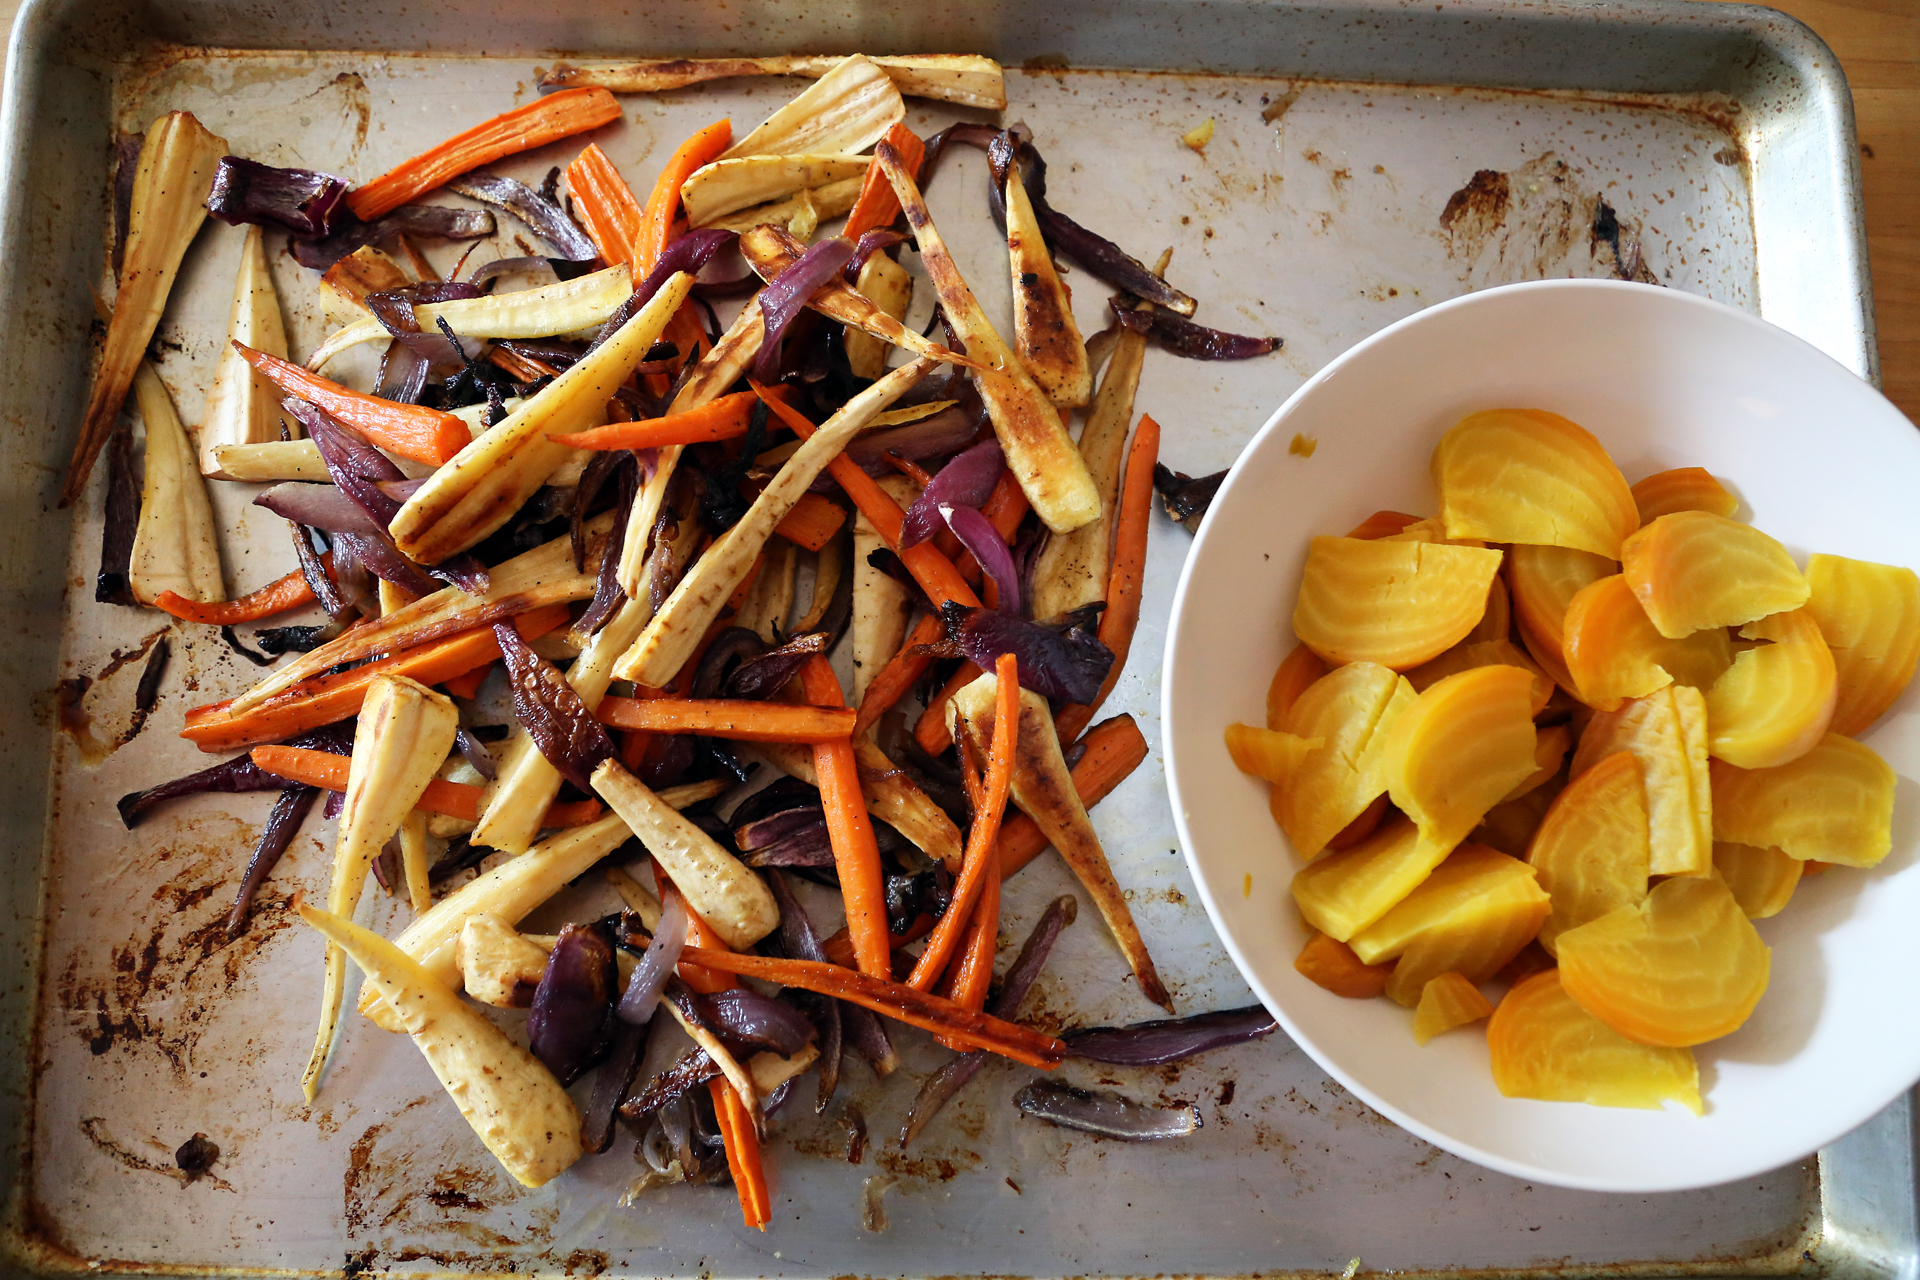 Roast the vegetables until just tender, about 40 minutes, turning occasionally for even cooking. Let cool to room temperature on the pan.